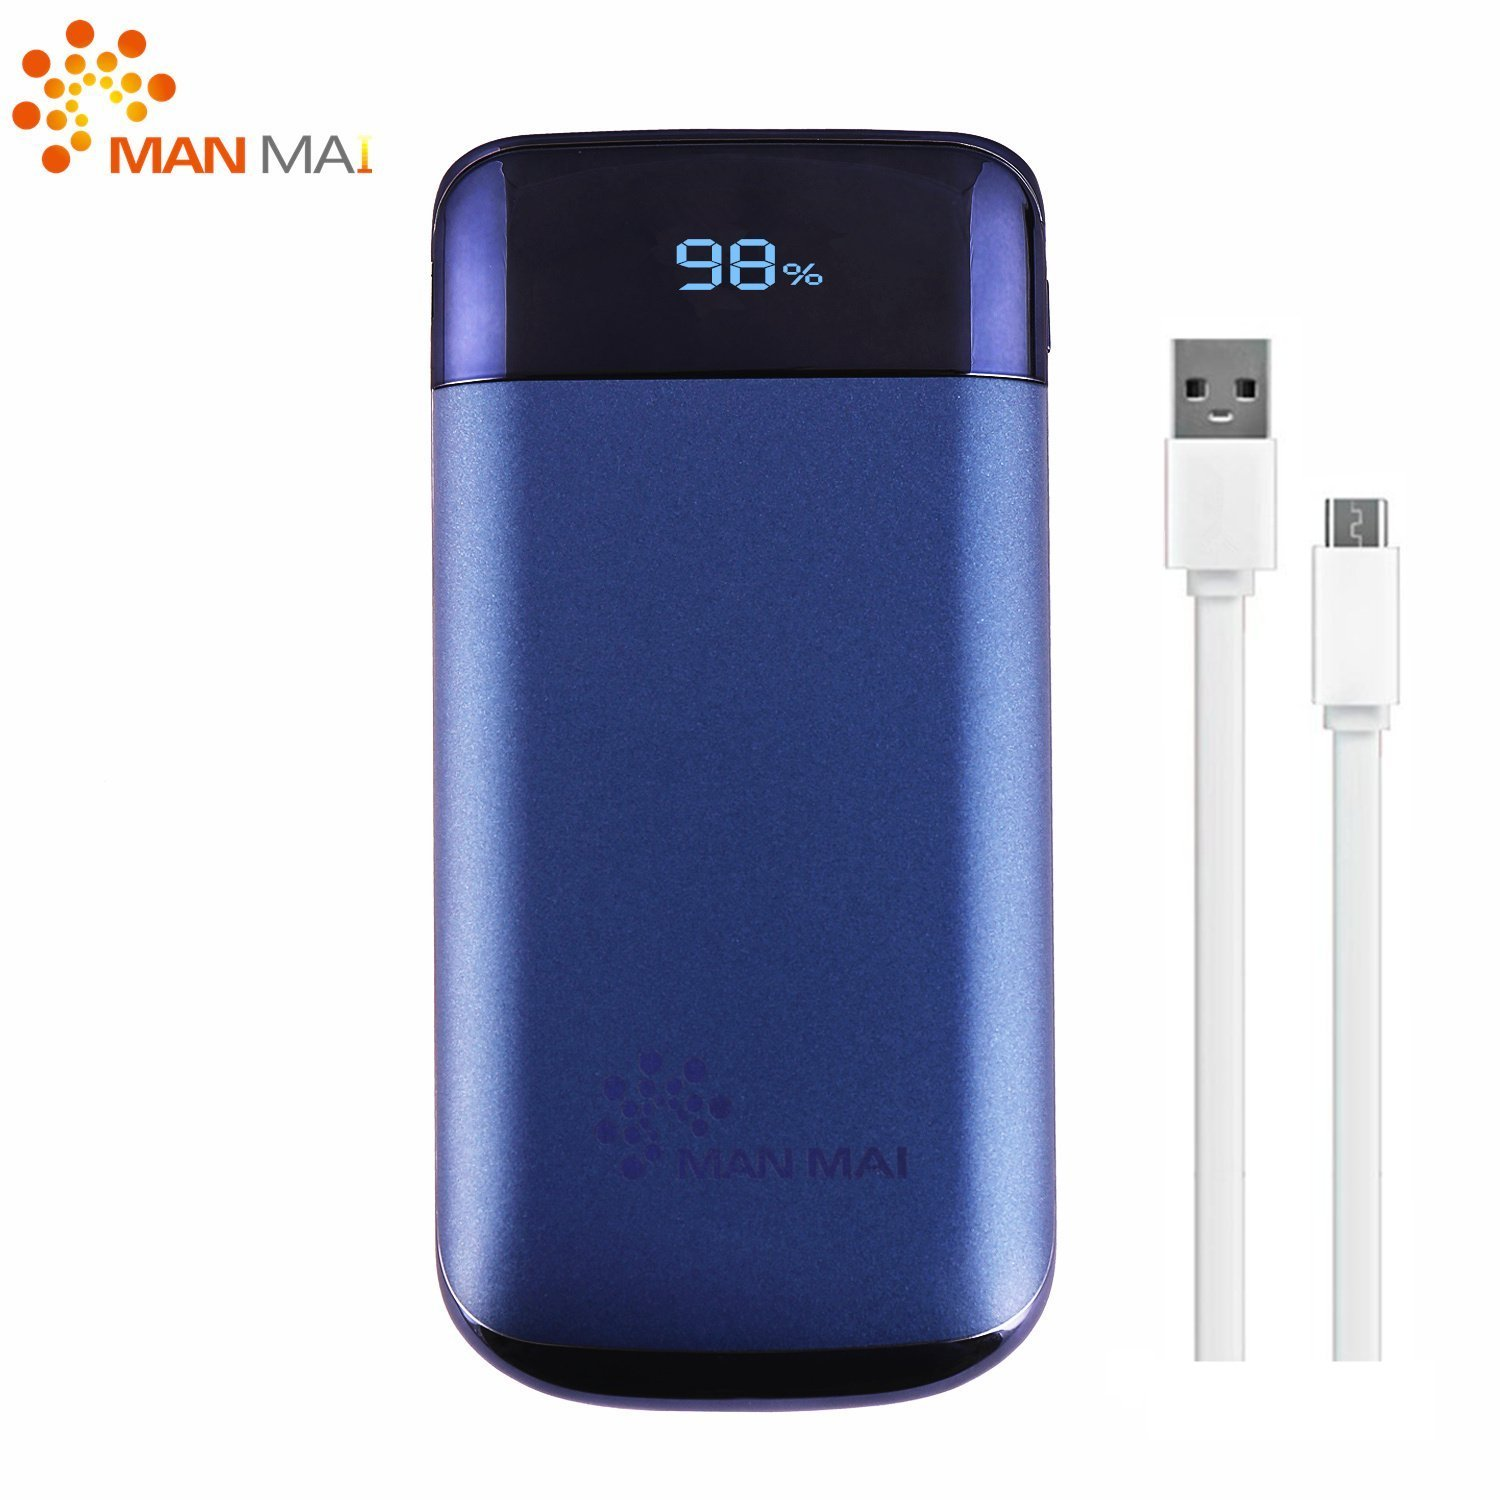 KUPPET 20000mAh Power Bank (Dual USB Port, 3.1A Total) External Portable Charger Battery Pack Portable Charger with LED Flashlight for iPhone 7, iPhone 8,iphone X,iPad Pro, Galaxy S8 Note8 and More by KUPPET (Image #3)